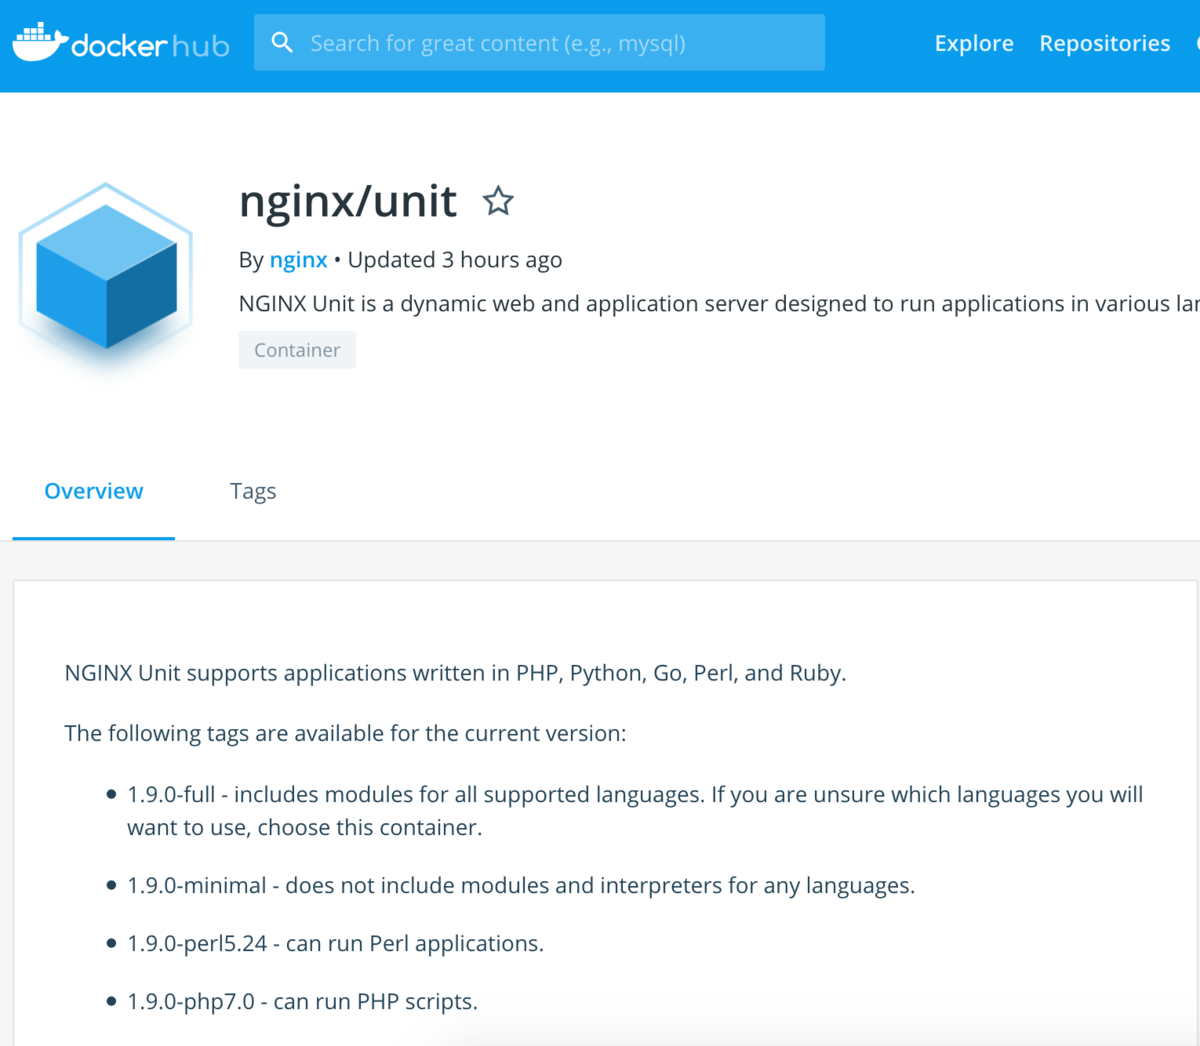 https://hub.docker.com/r/nginx/unit/